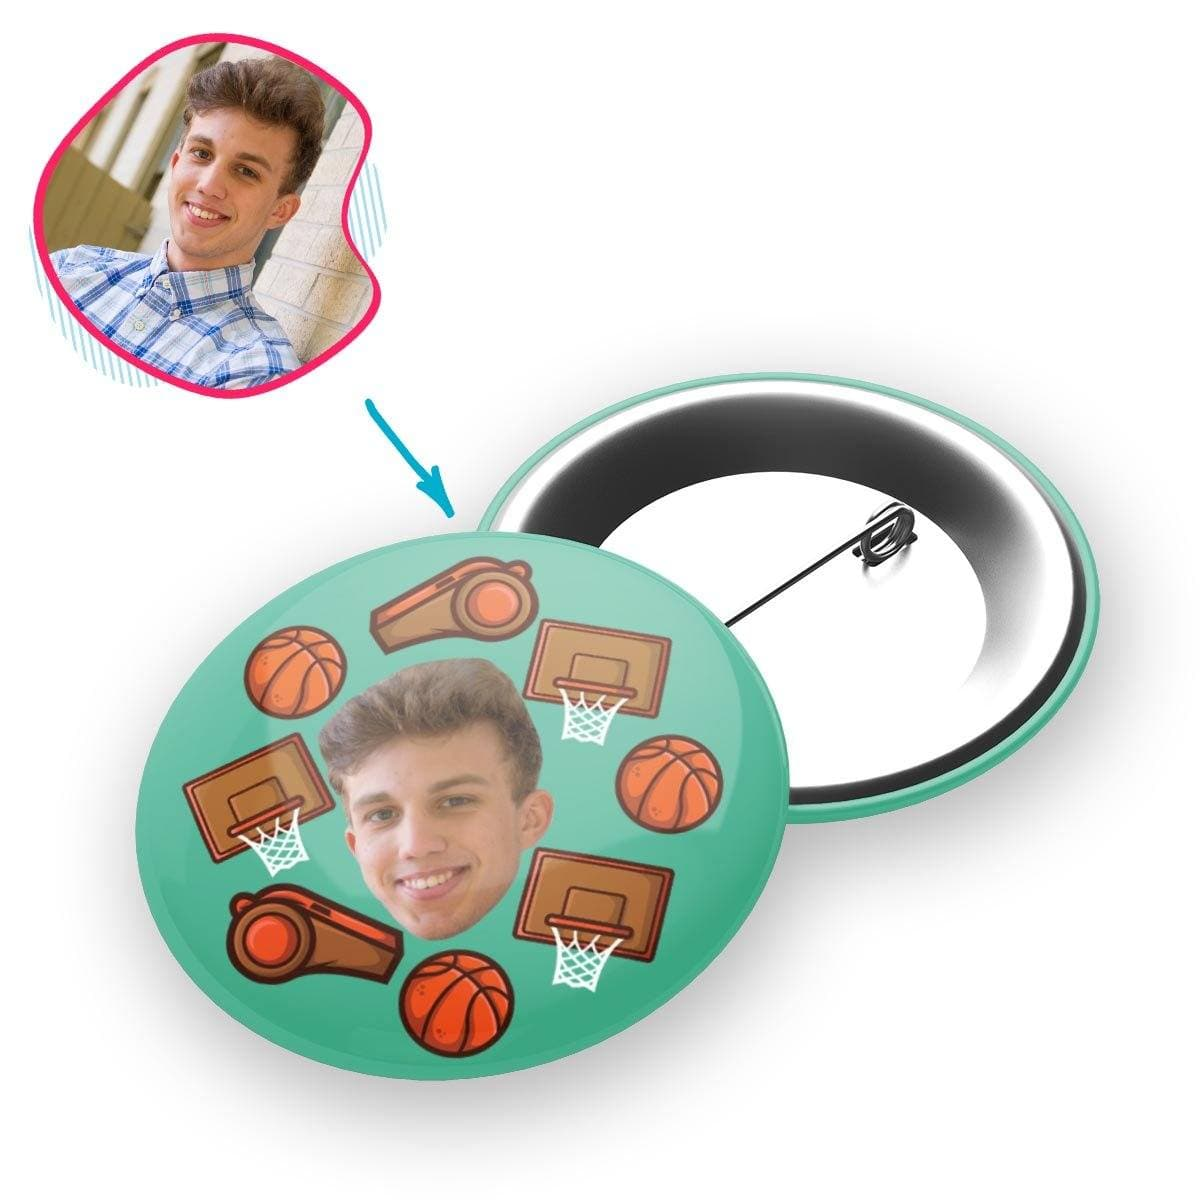 mint Basketball pin personalized with photo of face printed on it